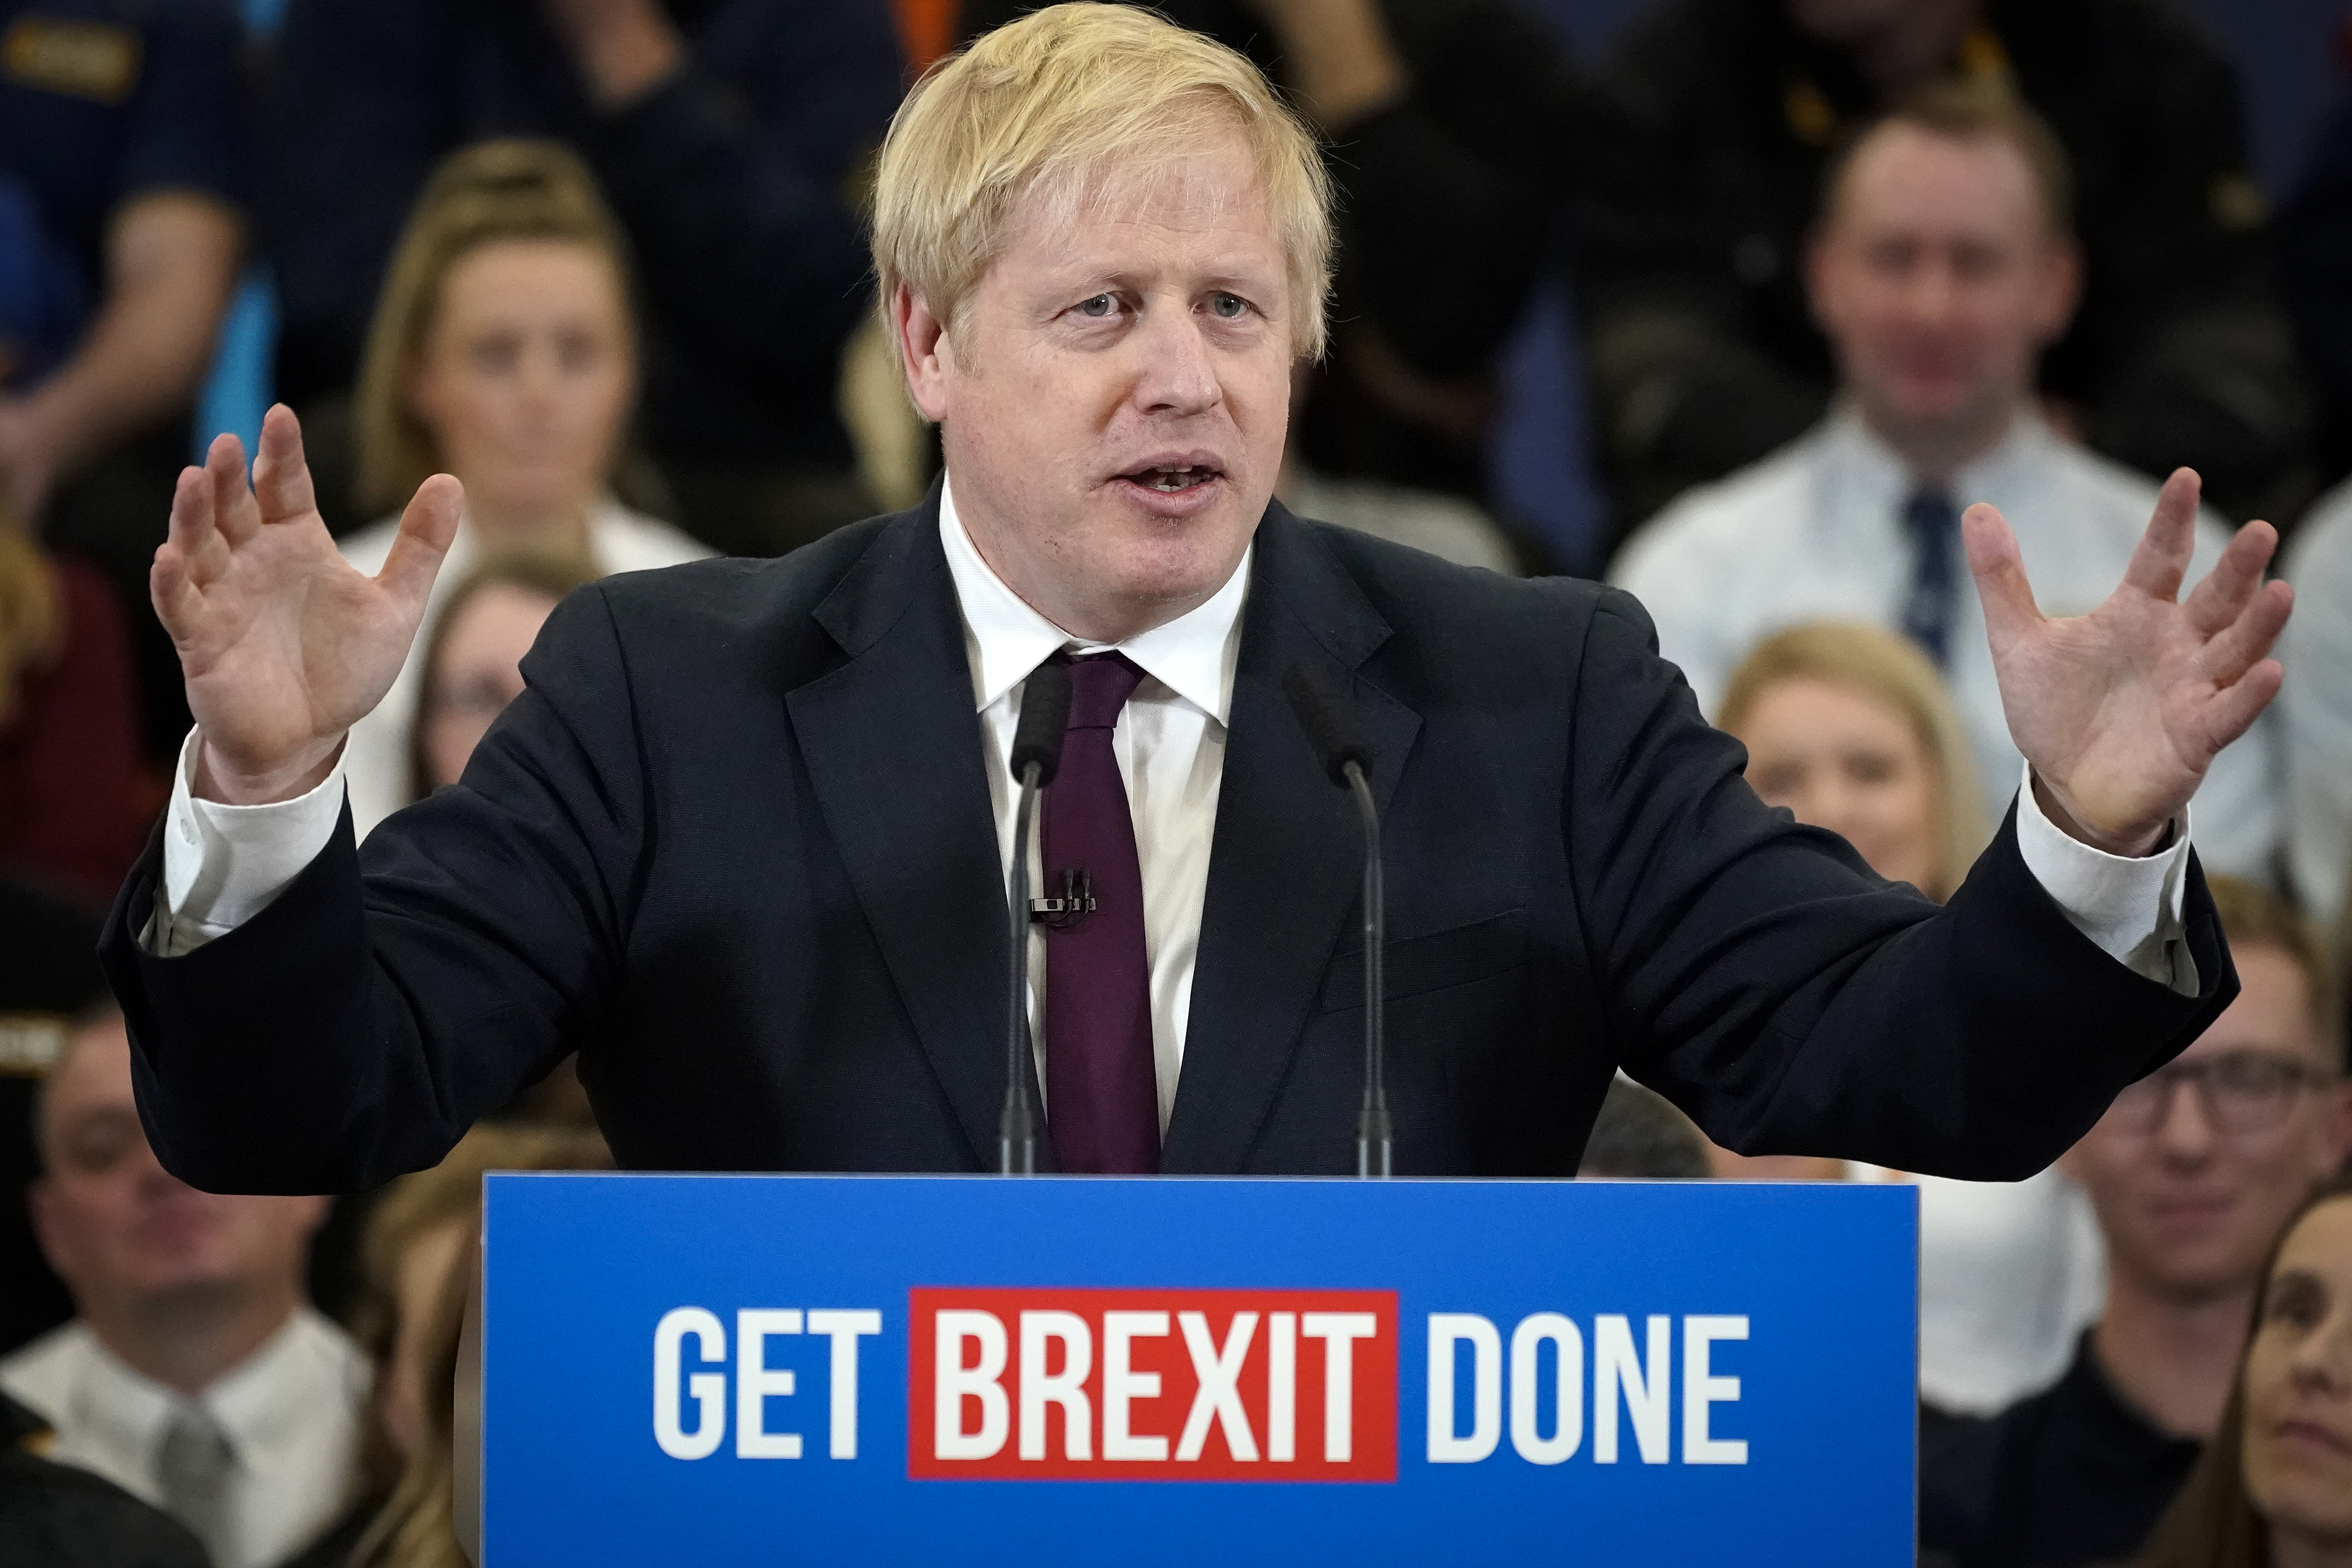 Boris Johnson wins major victory in UK elections